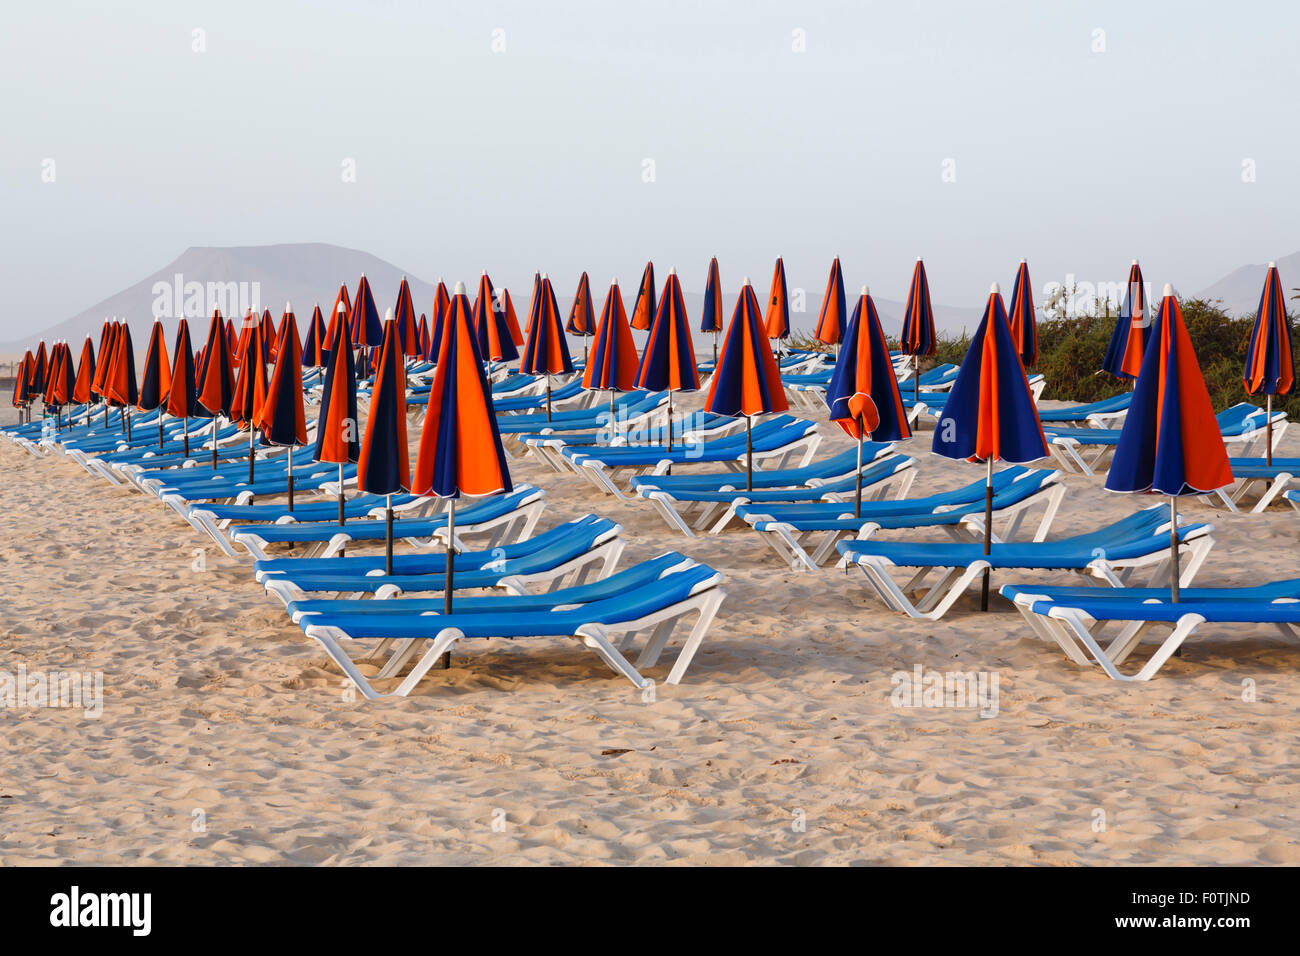 Line of loungers and umbrellas on a sandy beach Stock Photo